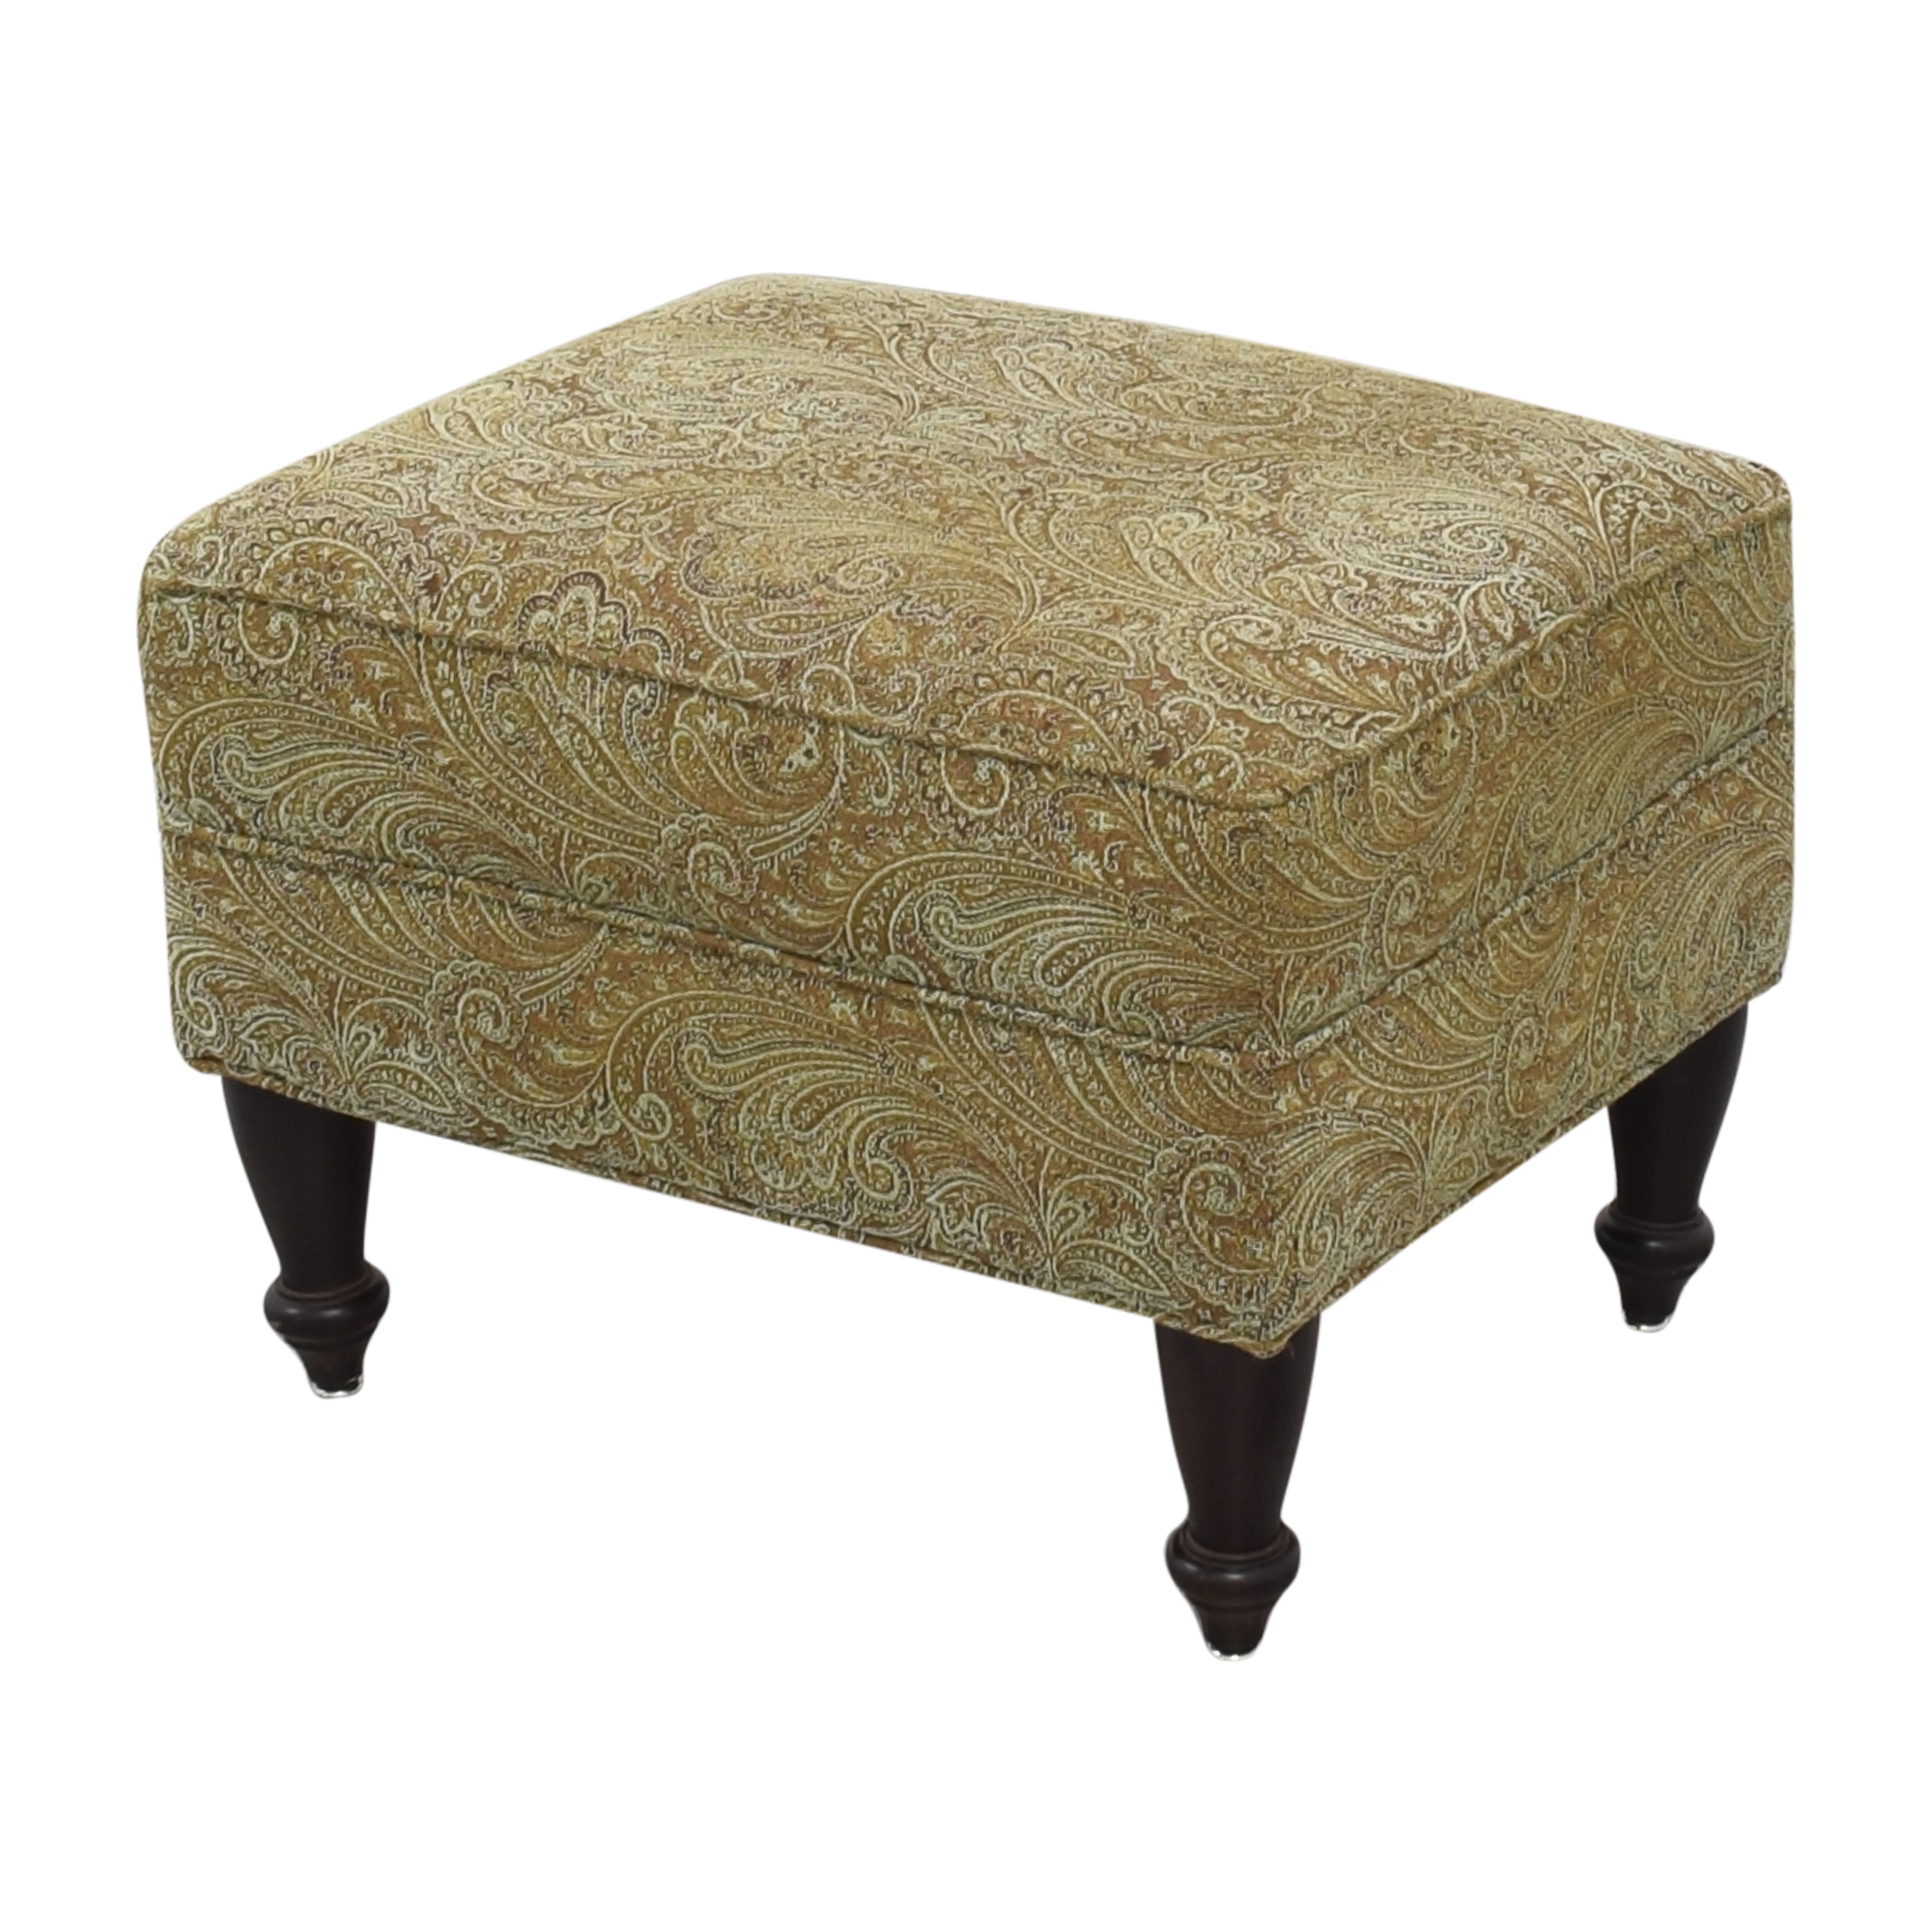 buy Rowe Furniture Upholstered Ottoman Rowe Furniture Chairs